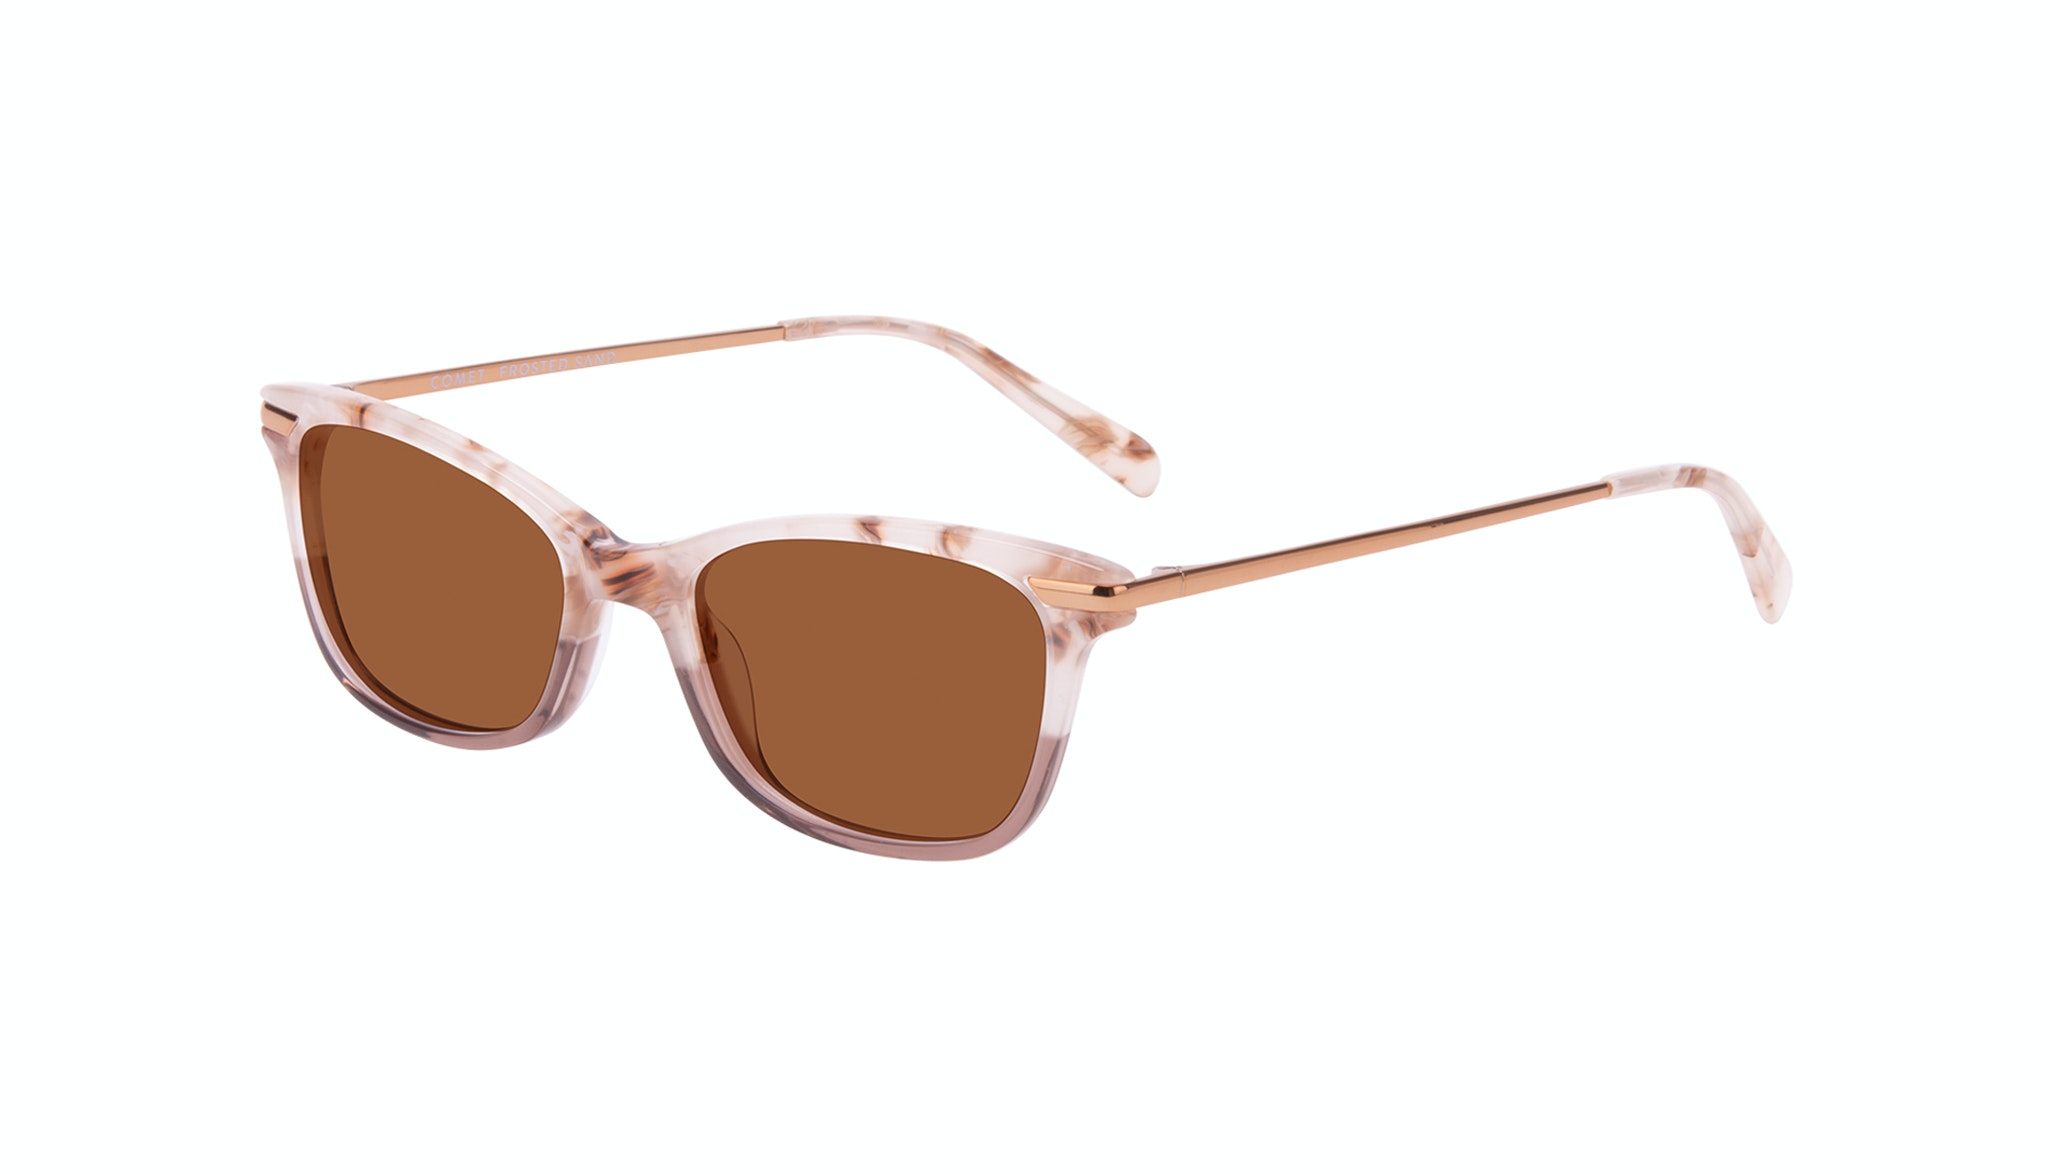 Affordable Fashion Glasses Rectangle Sunglasses Women Comet II Frosted Sand Tilt